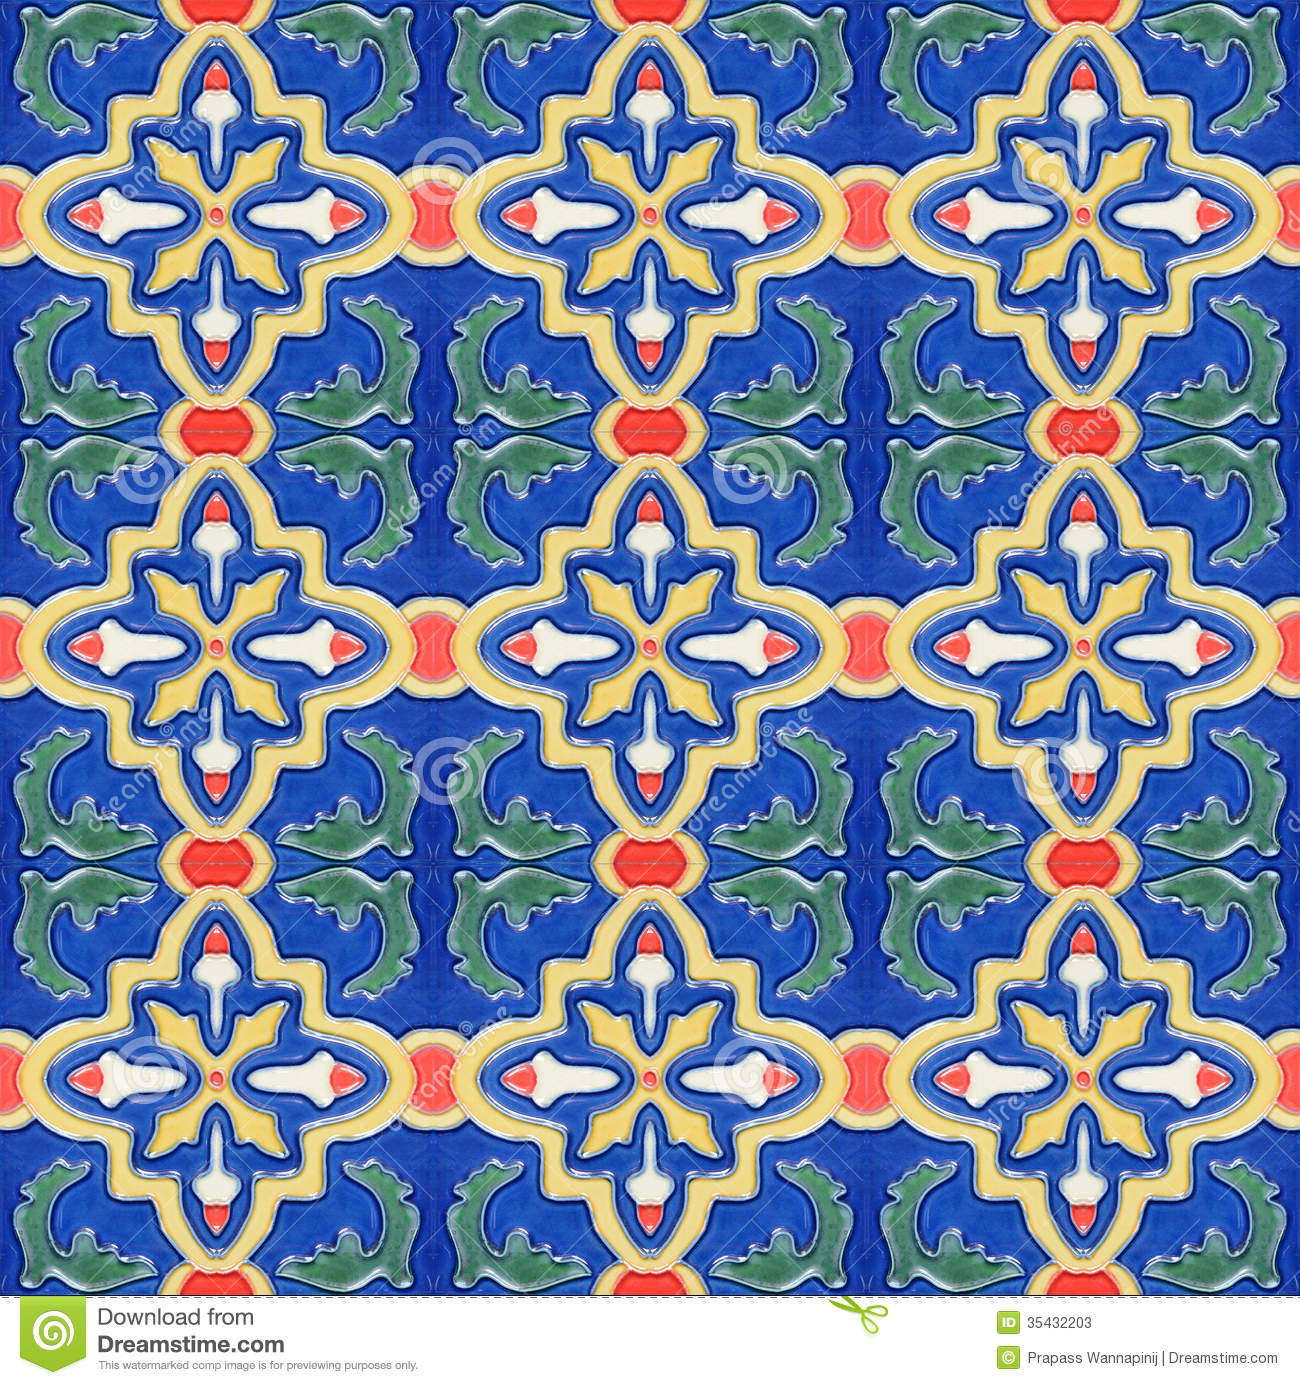 Spanich Moroccan Style Vintage Ceramic Tile Stock Image - Image of ...